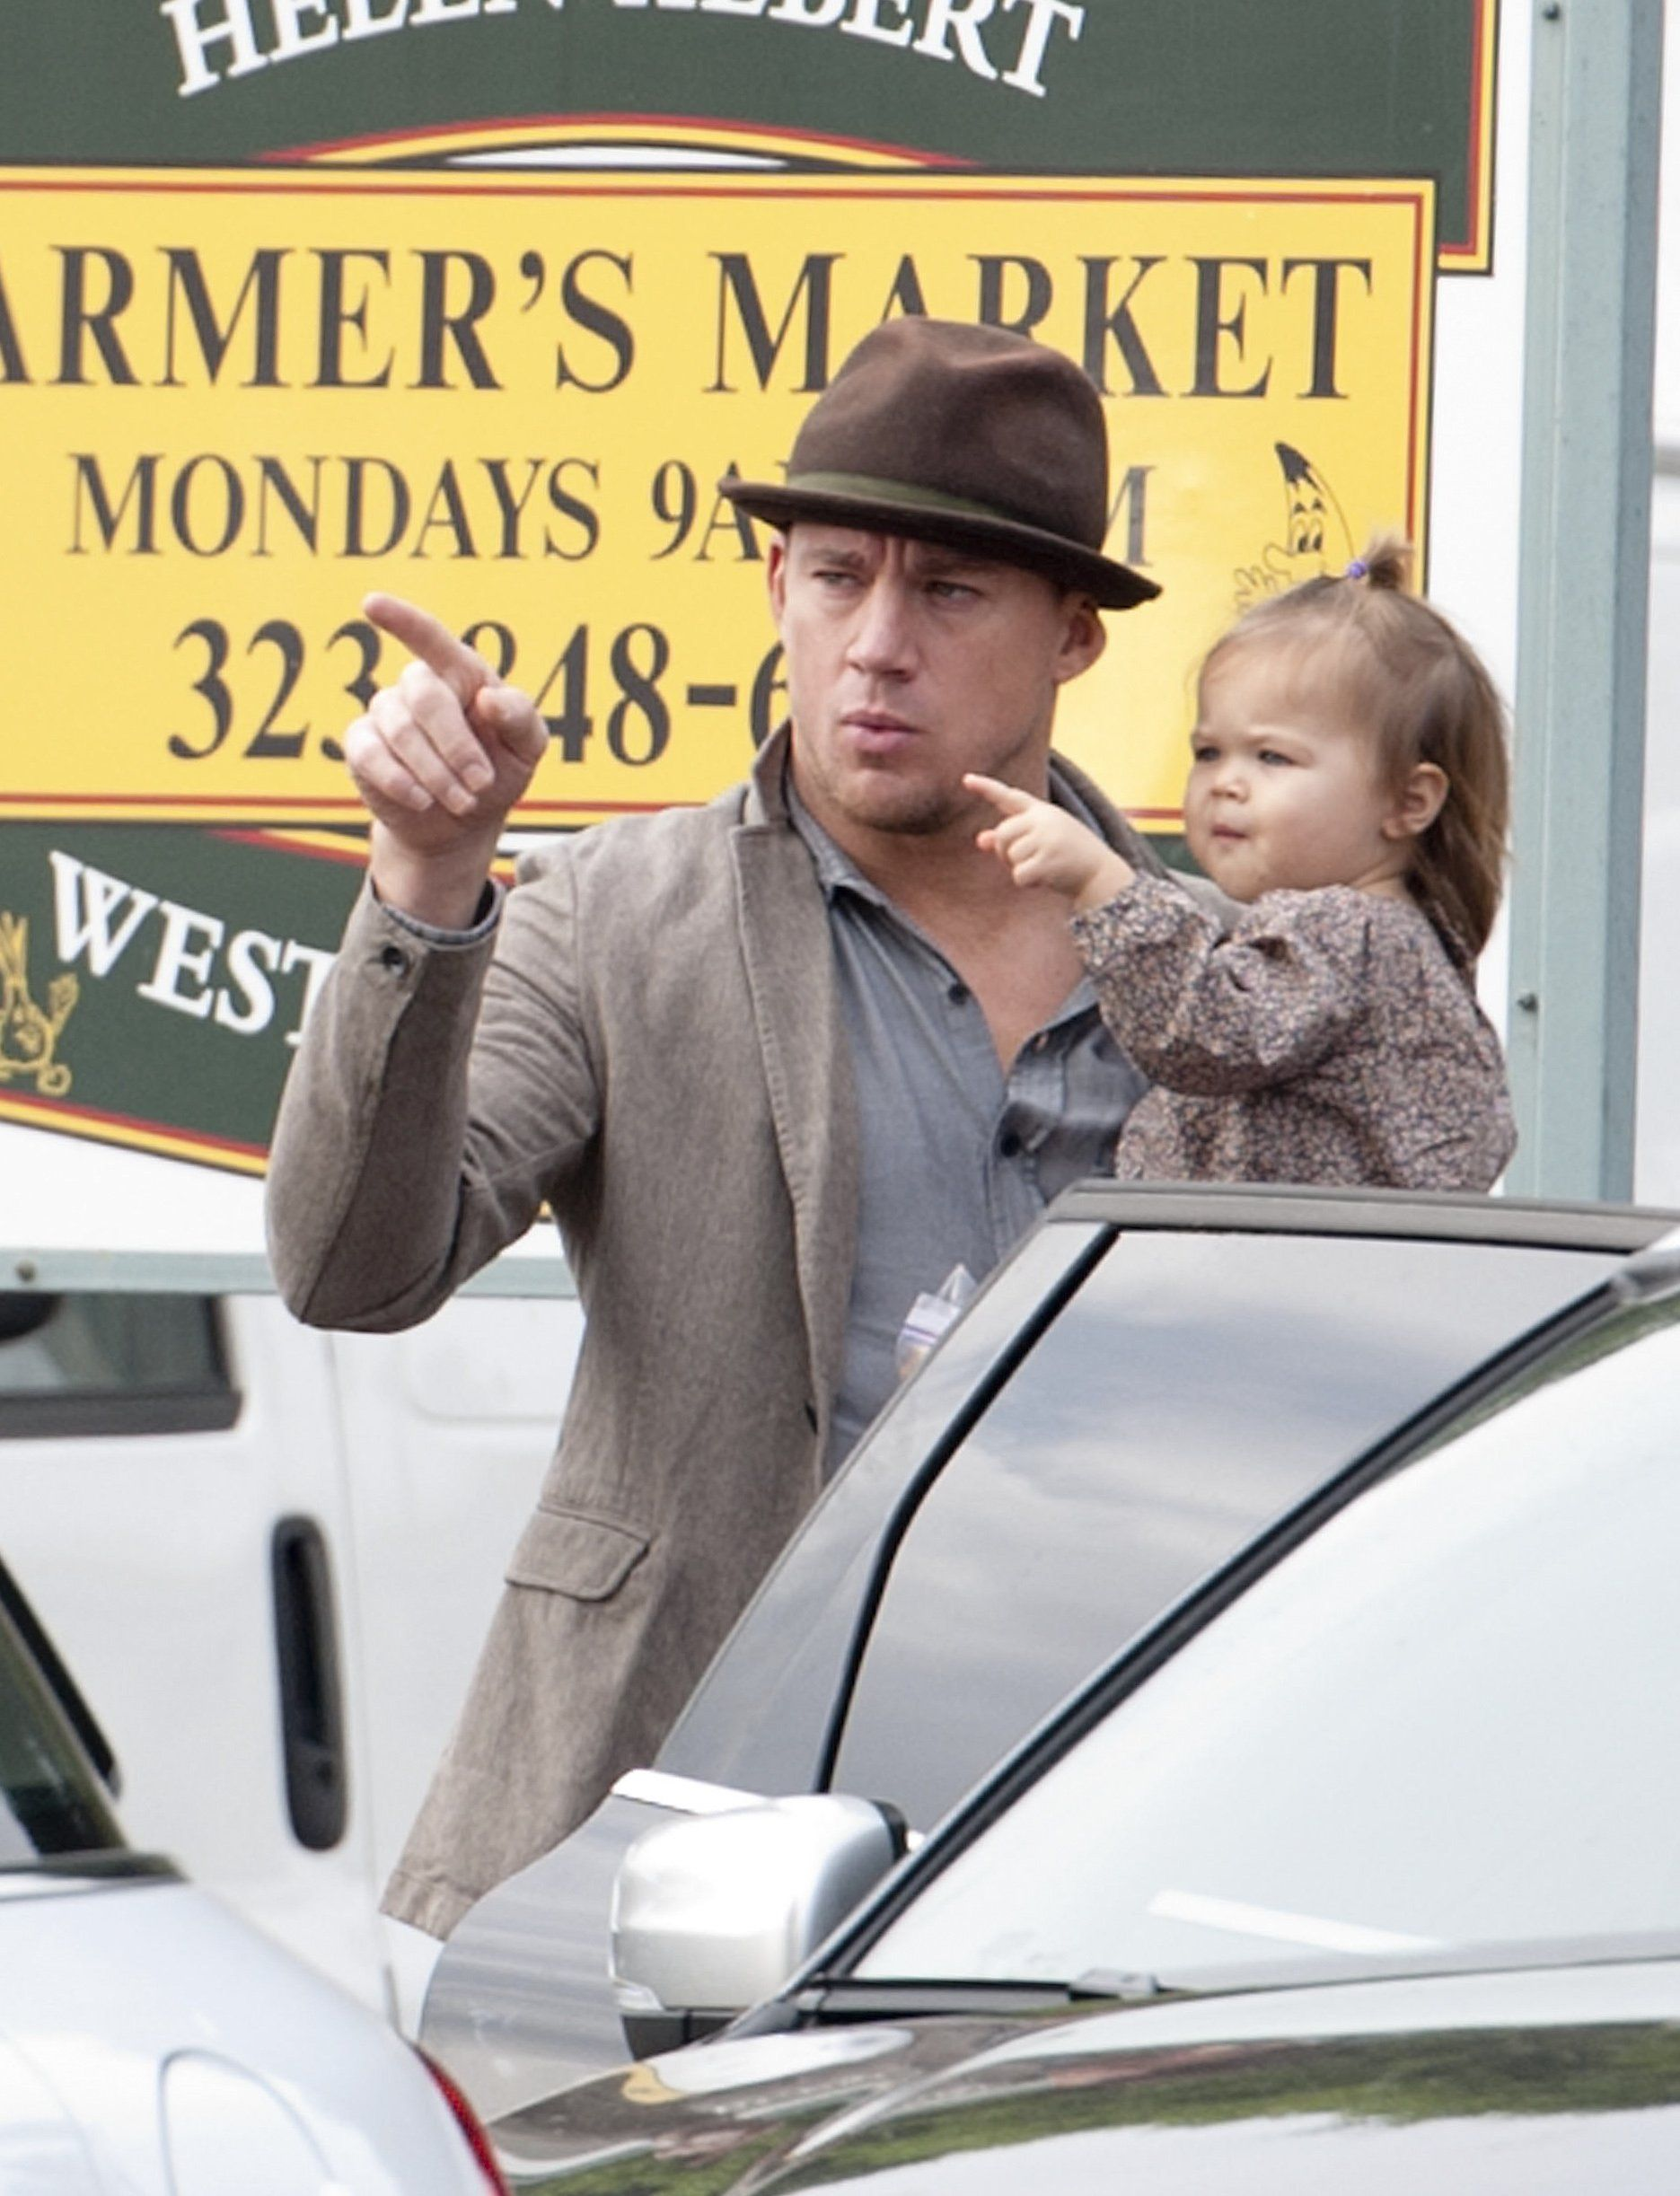 Channing Tatum - The Magic Mike star and his daughter Everly appear to be headed in the right direction with their off-duty style.